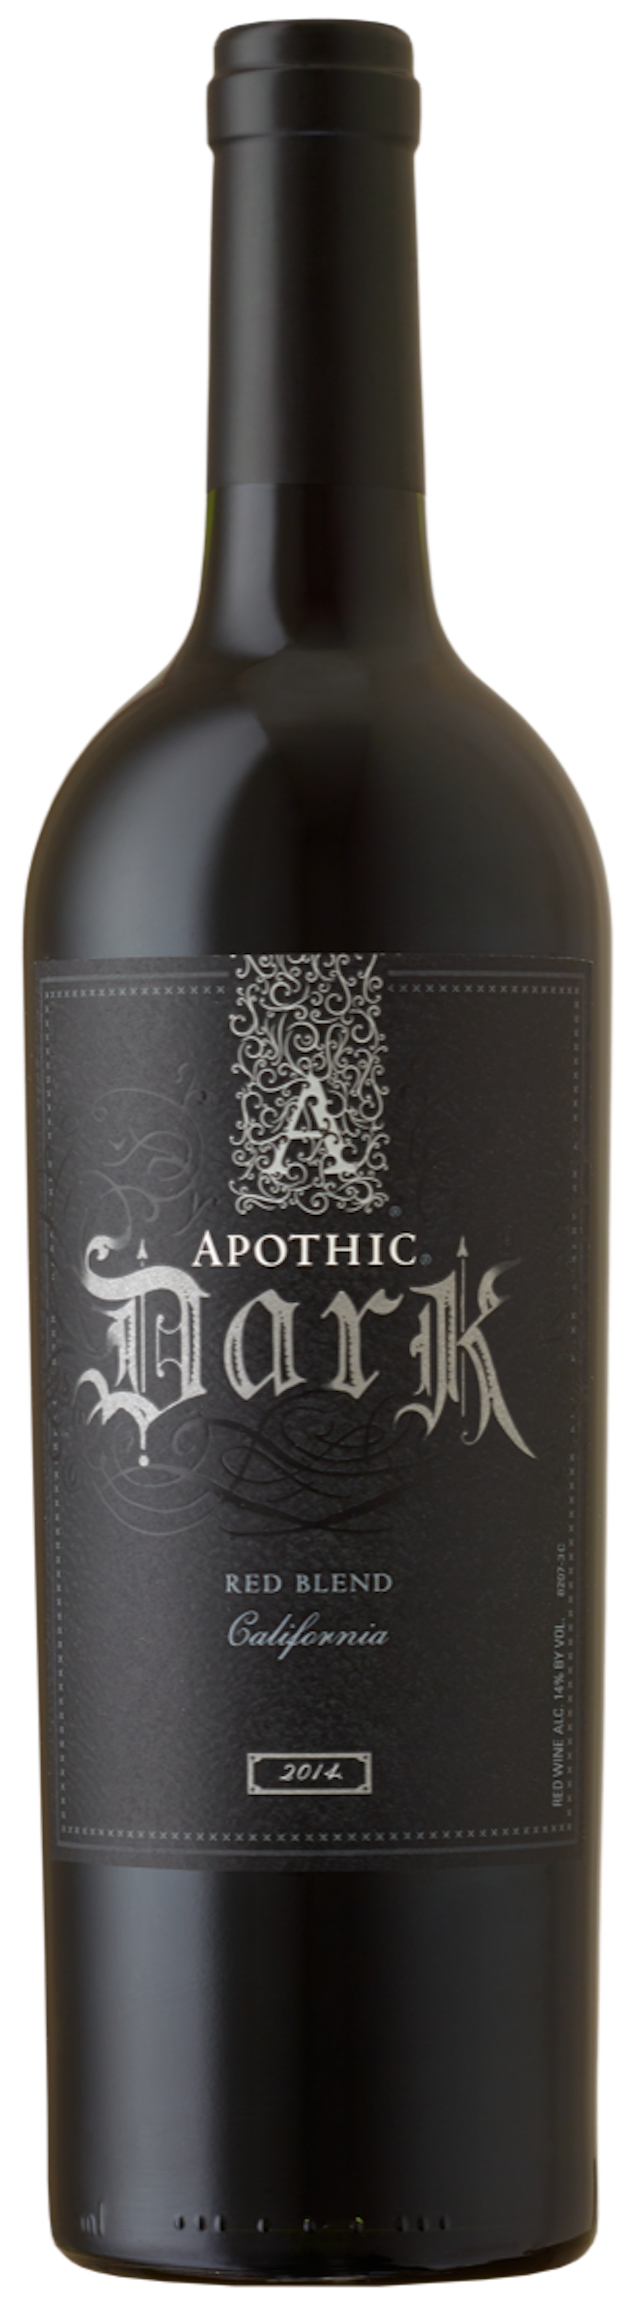 E&J Gallo's Apothic, which depleted more than 2 million cases in 2014, appeals to sweet red blend consumers.